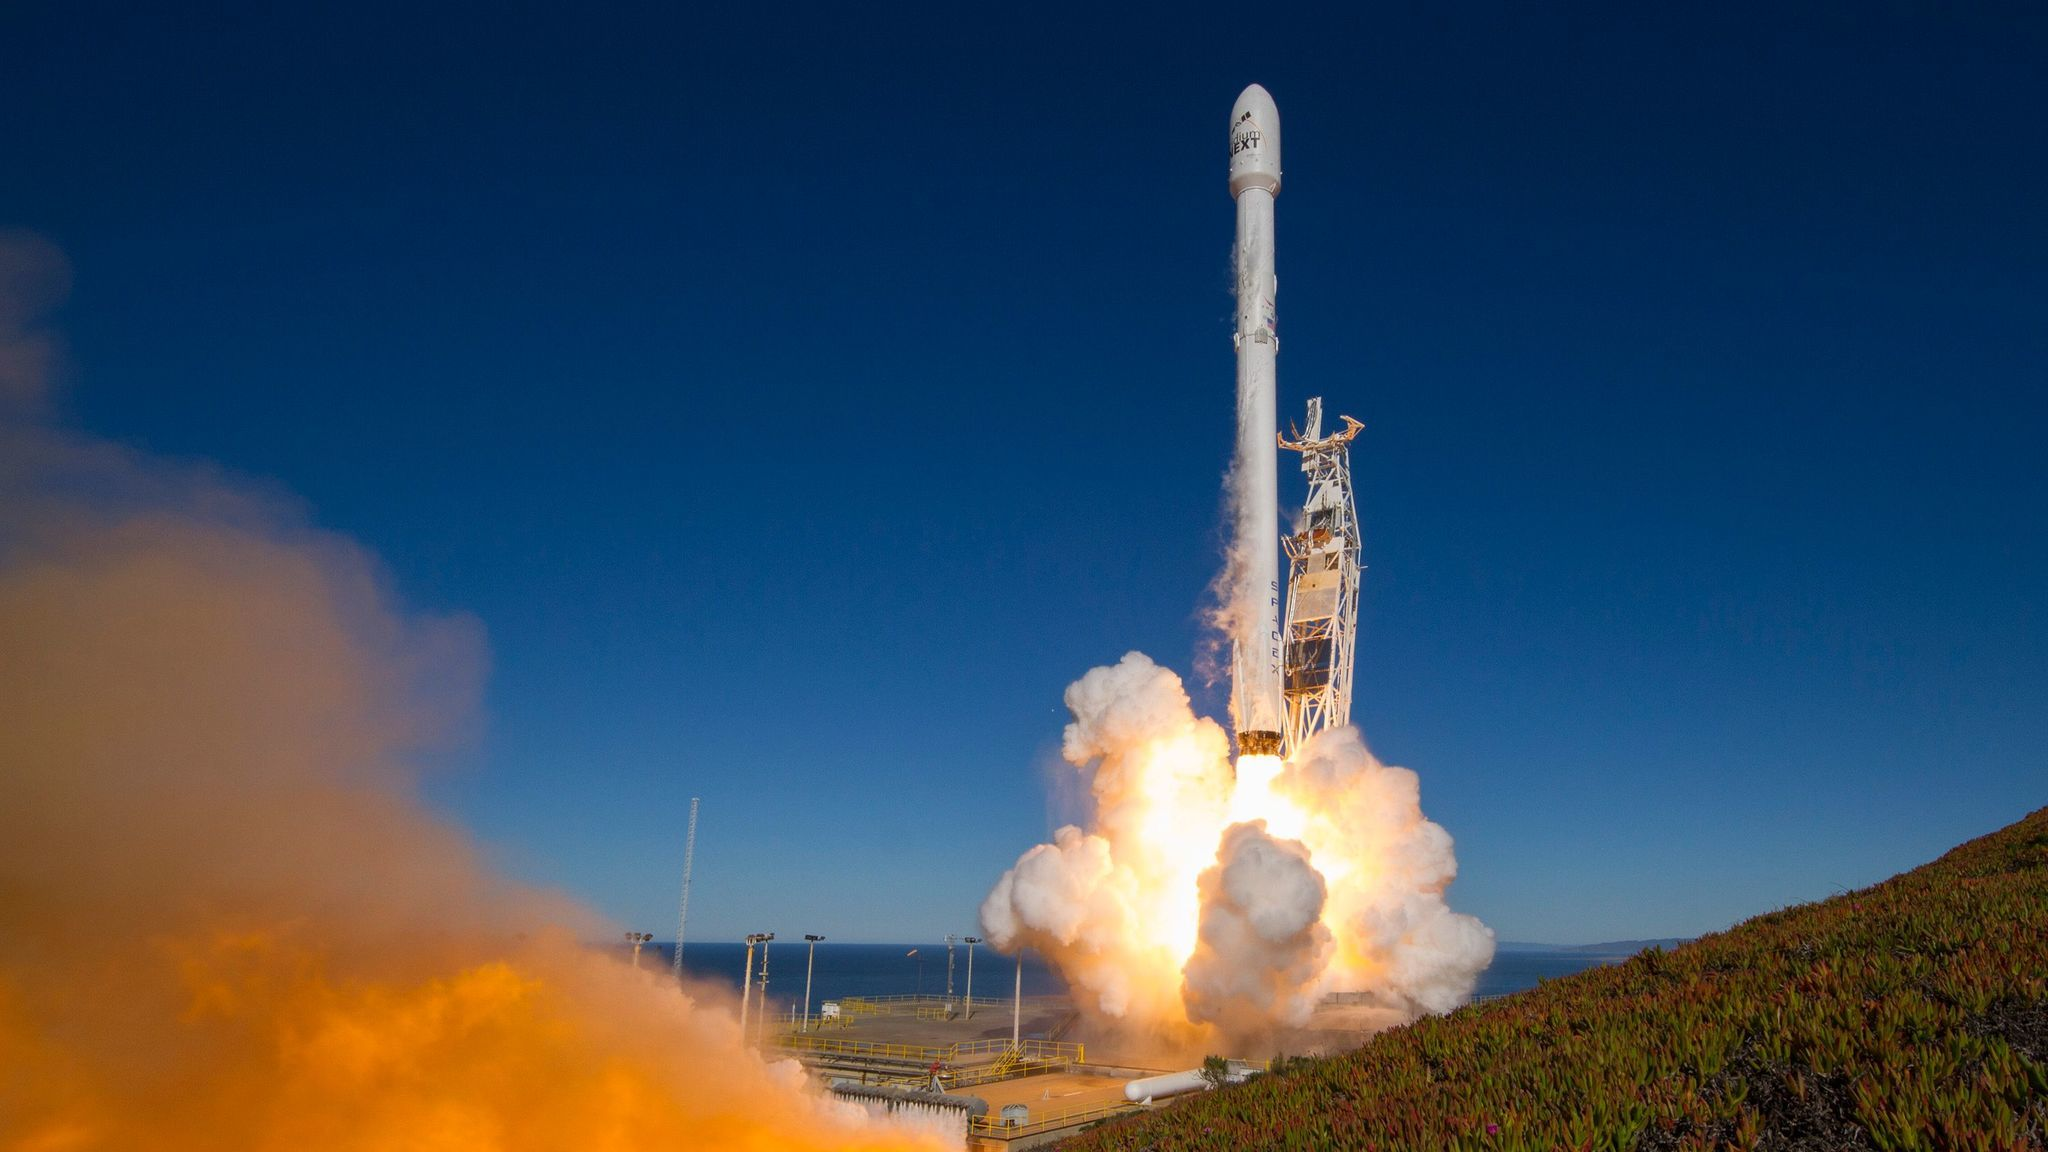 from its falcon heavy to reusing its rocket boosters spacex faces